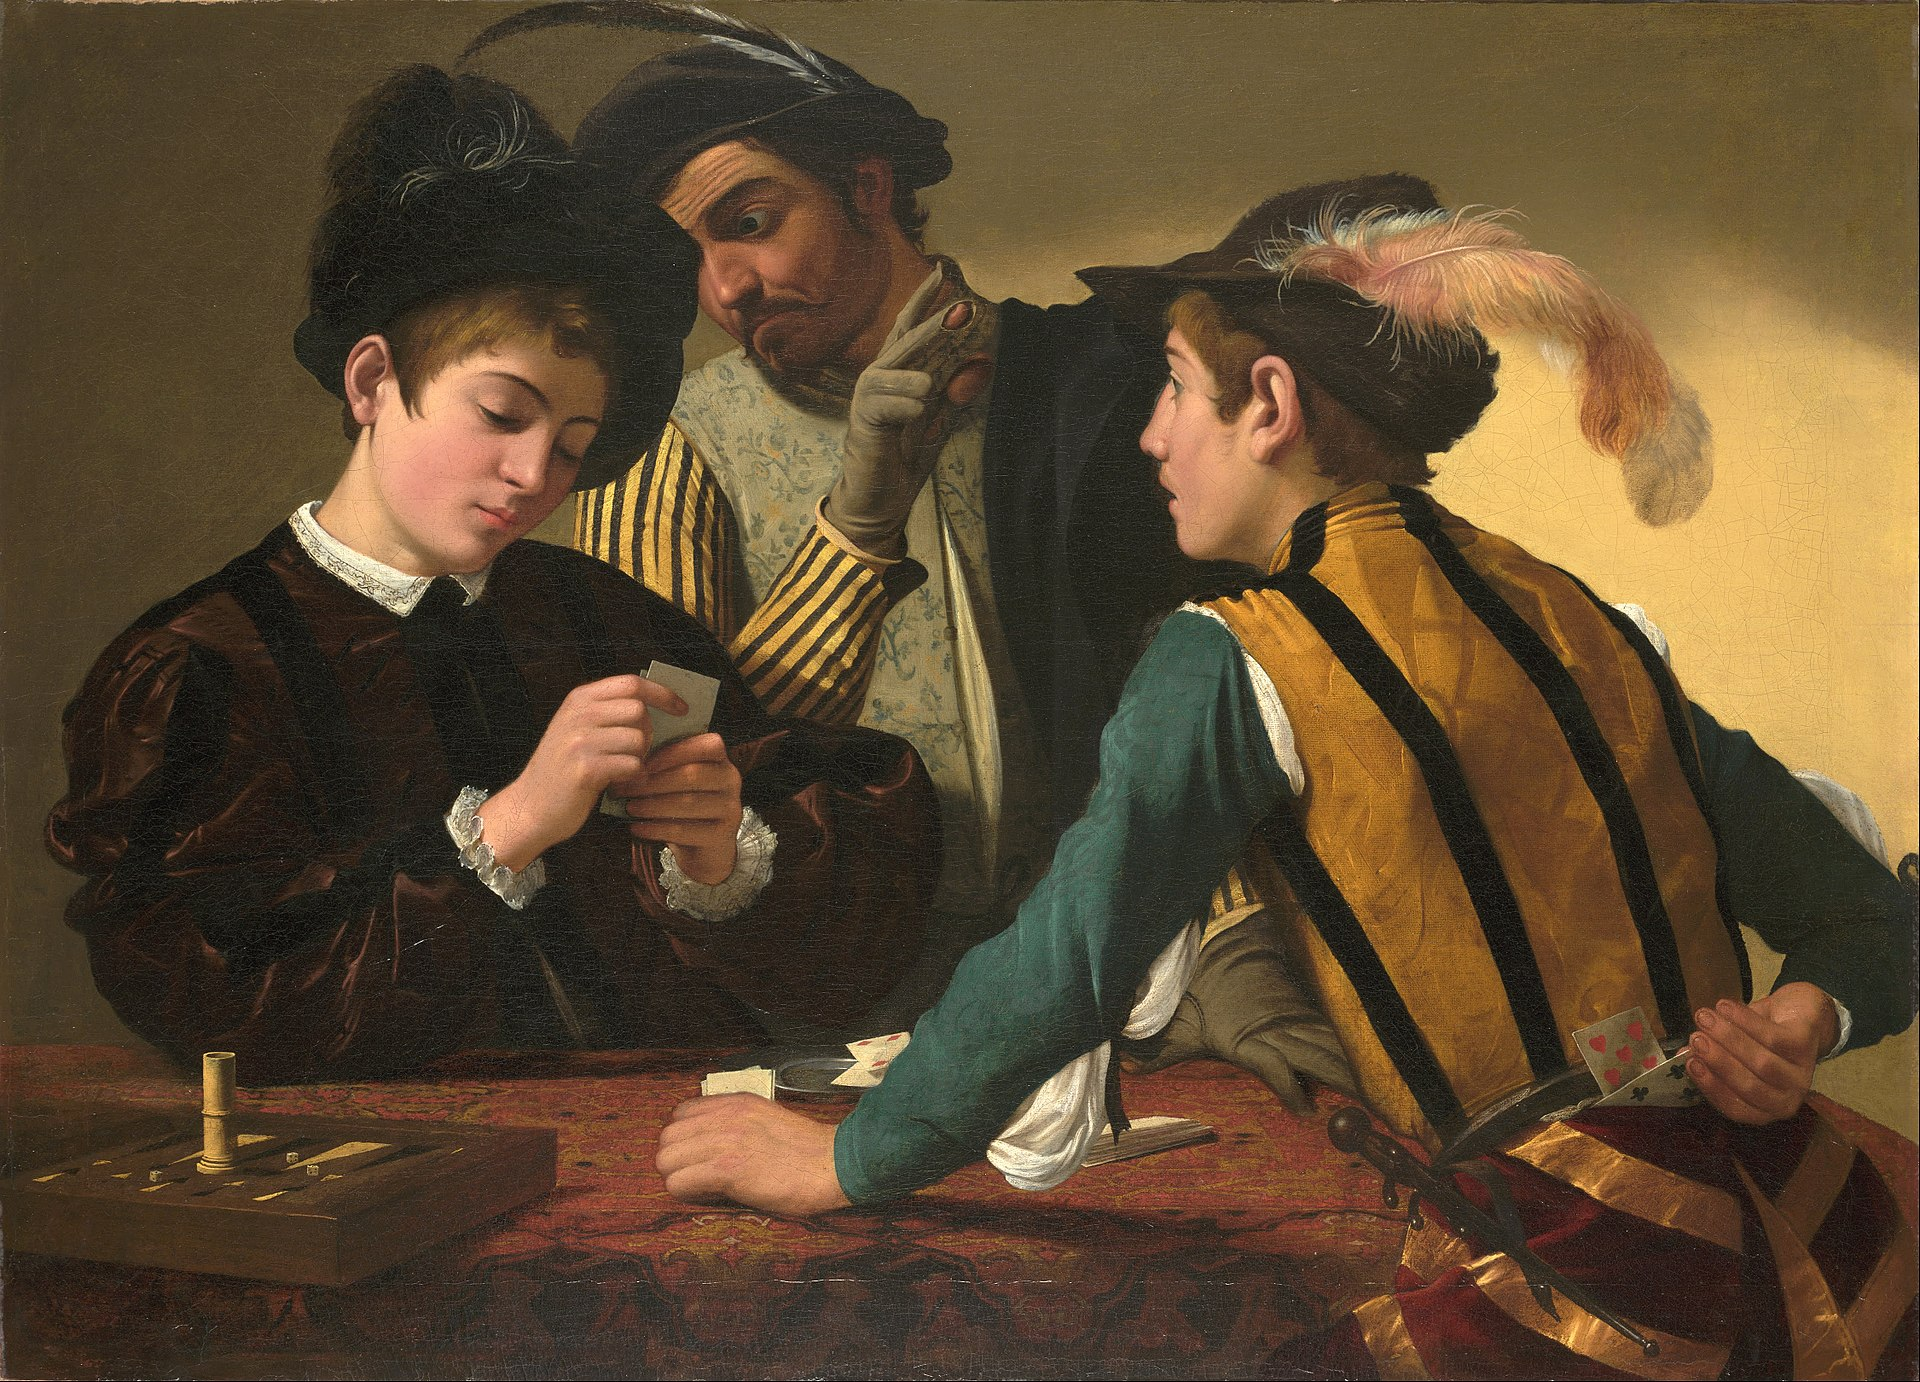 Artists Who Were Inspired by Gambling